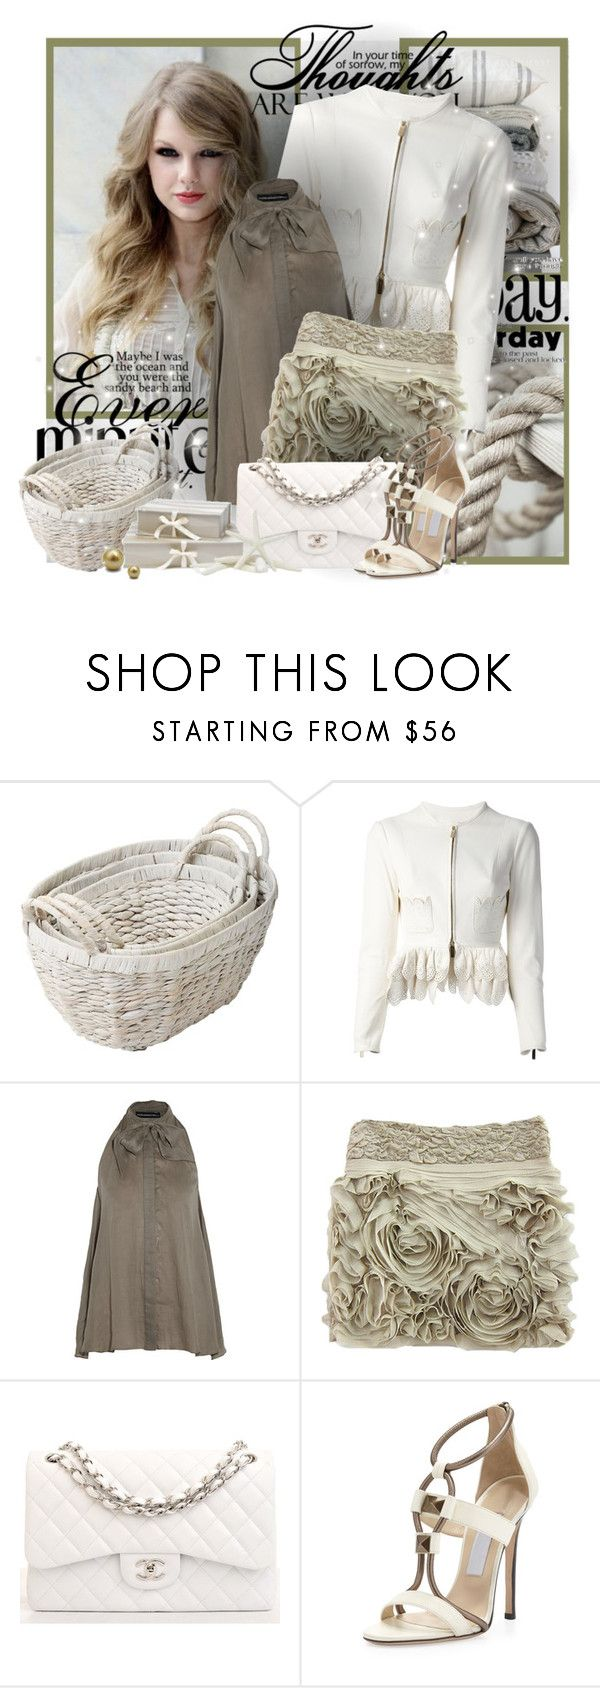 """№ 570"" by olga3001 ❤ liked on Polyvore featuring Monday, Shabby Chic, Dsquared2, Maria Grachvogel, Christian Louboutin, Chanel and Jimmy Choo"